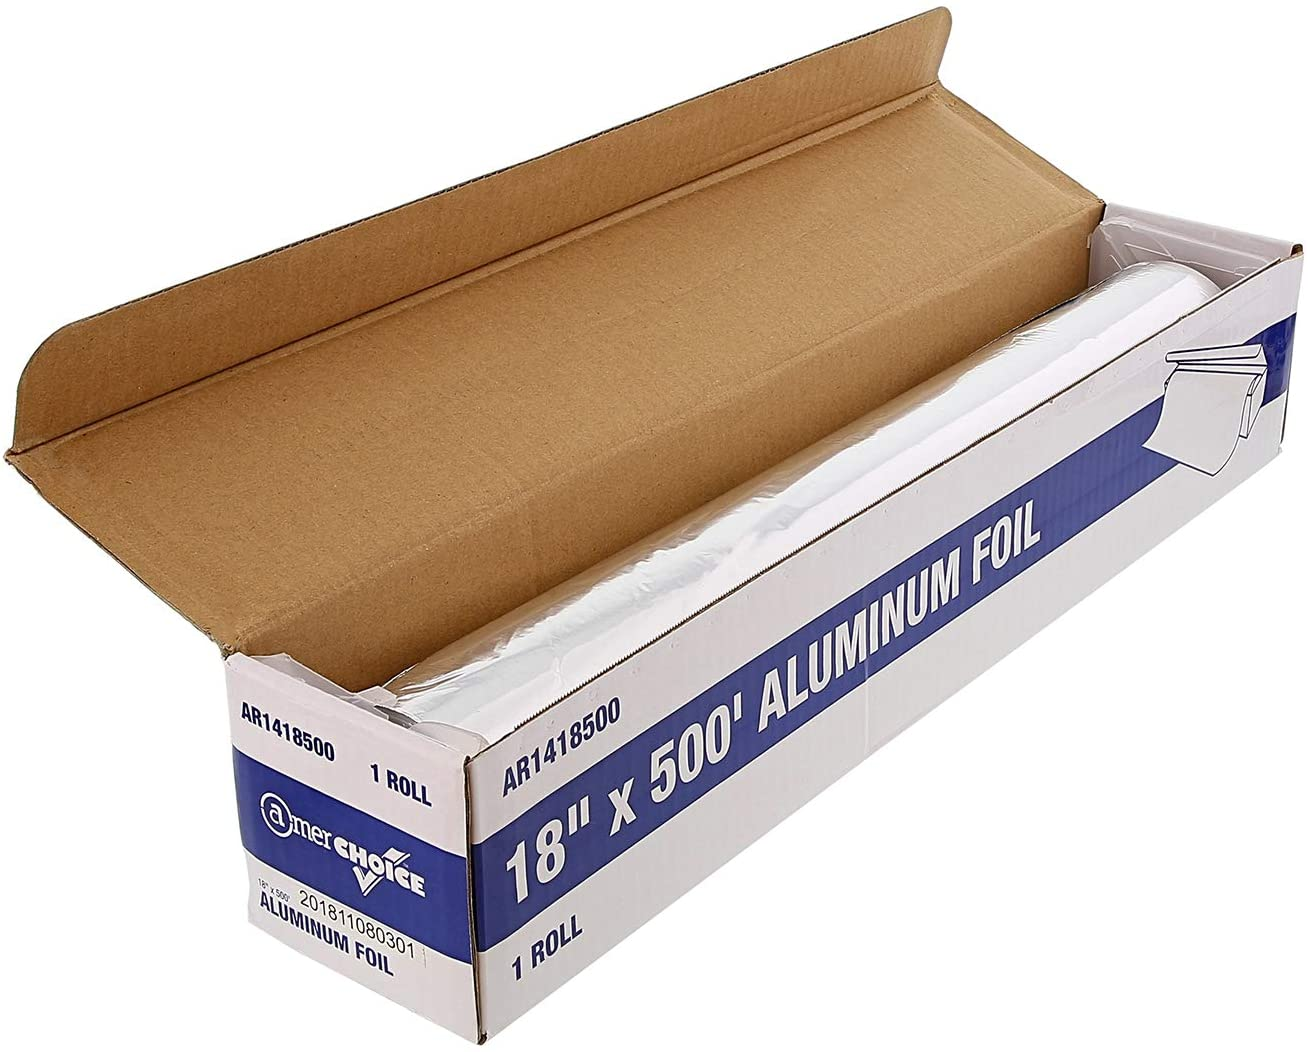 Royal Disposable Aluminum Foil Roll, 18 Inches x 500 Feet, Package of 1